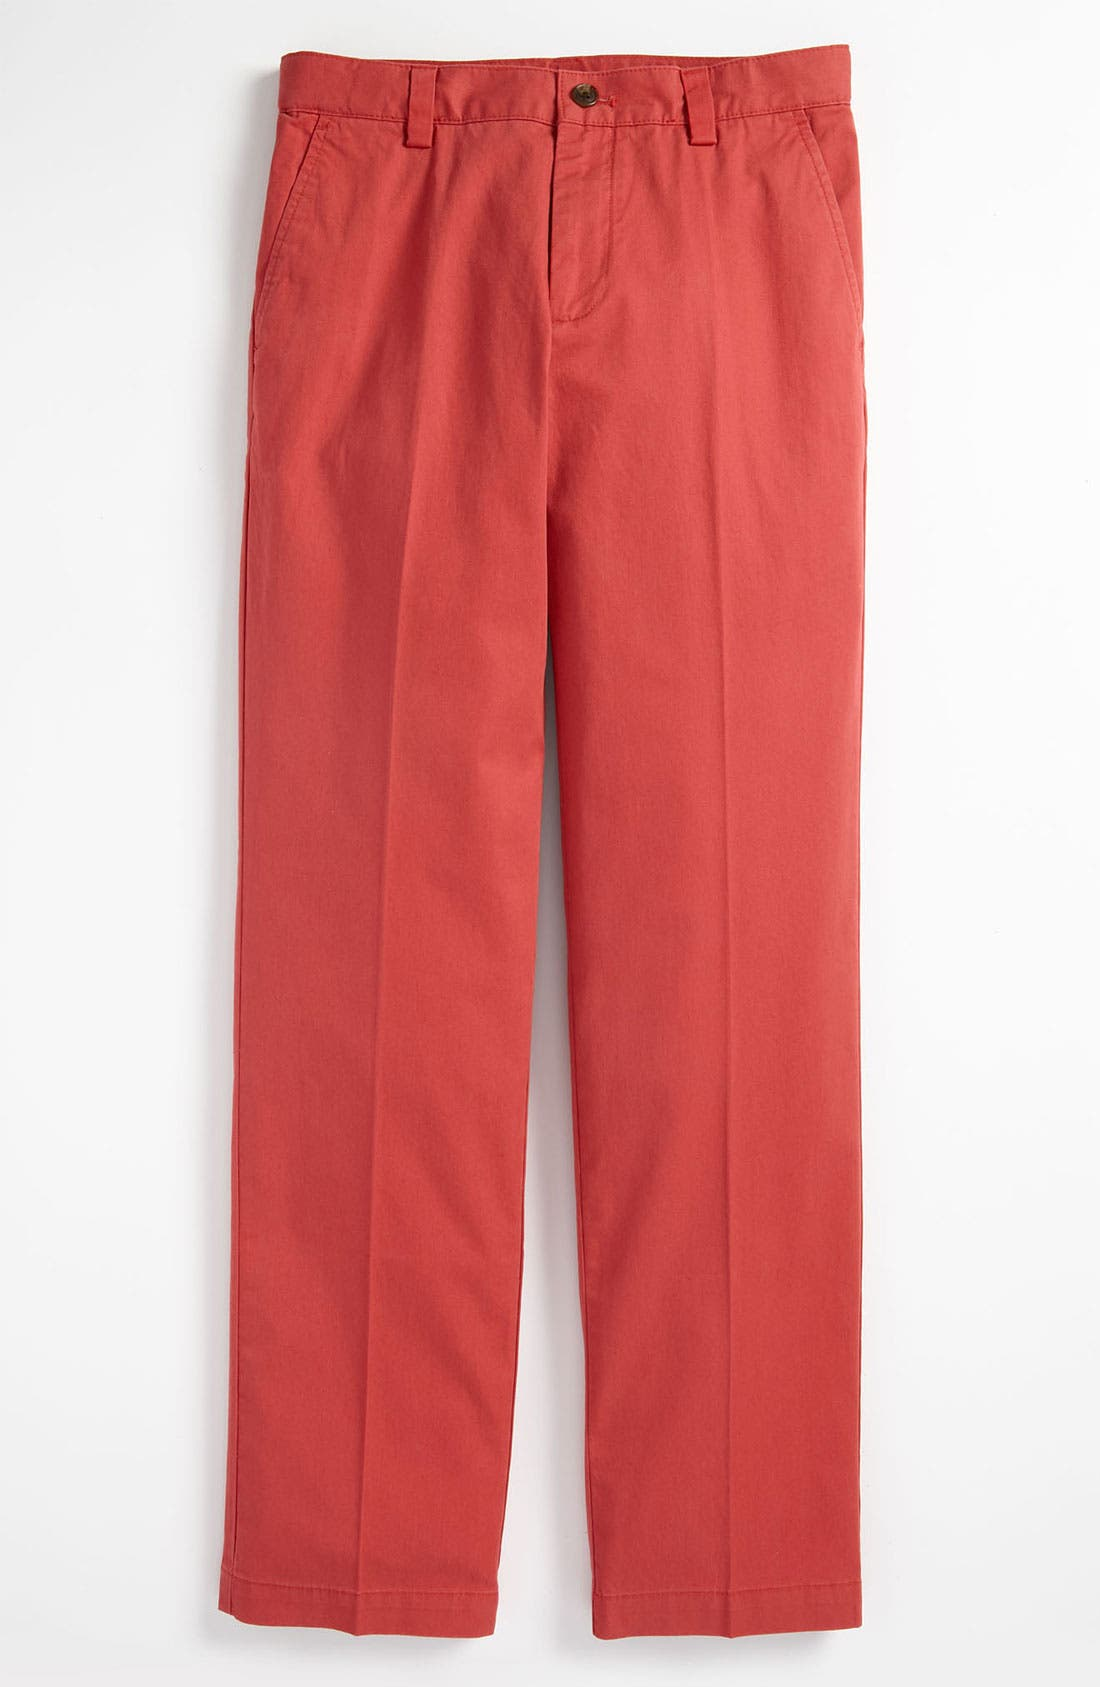 Alternate Image 1 Selected - Brooks Brothers 'Vintage' Chinos (Big Boys)